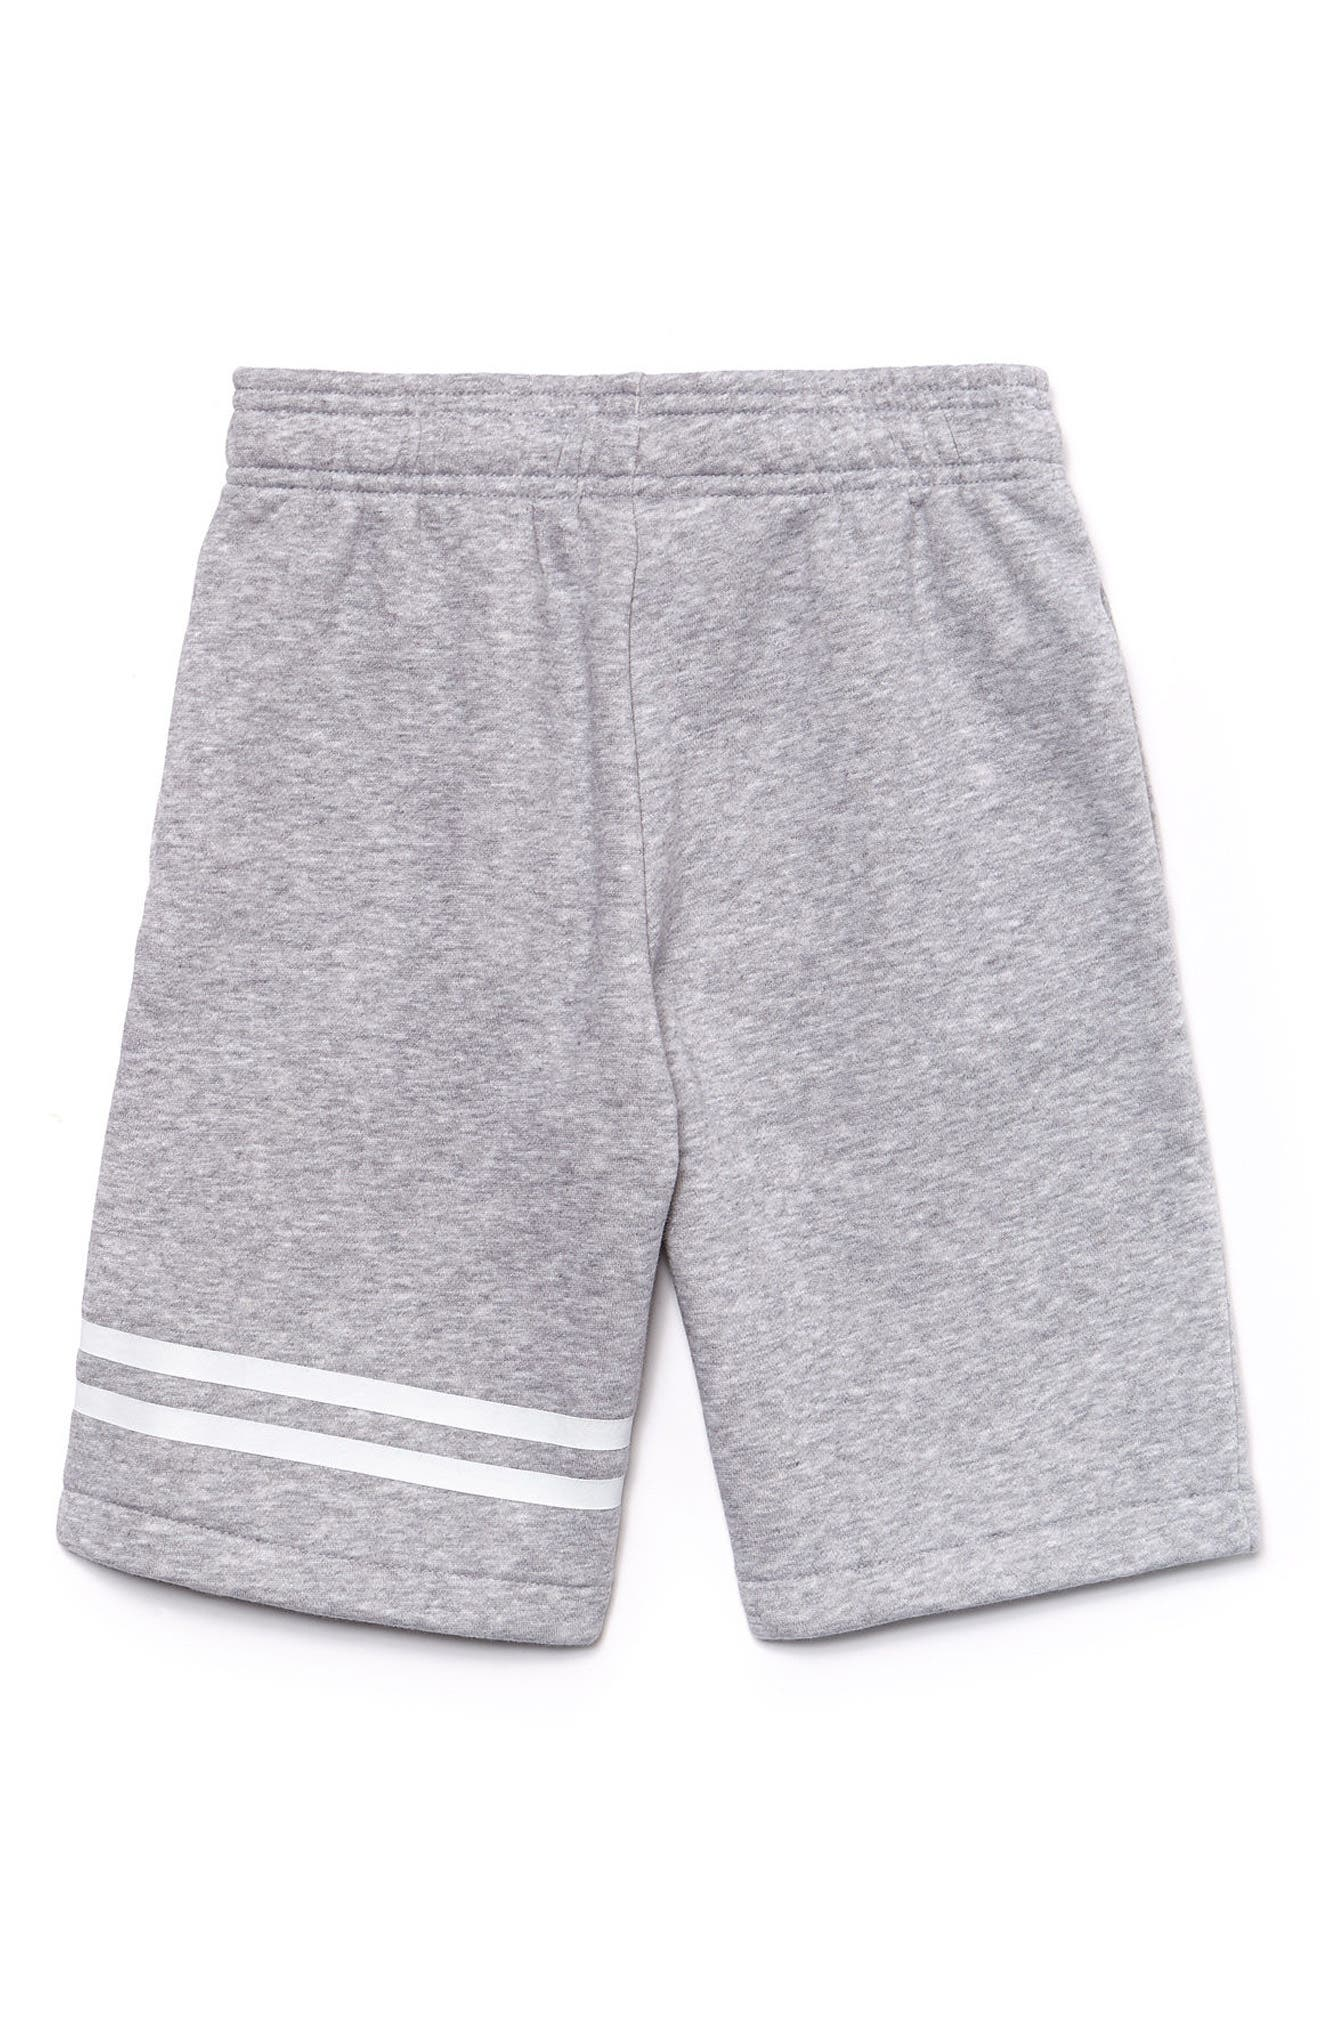 Sport Knit Shorts,                             Alternate thumbnail 2, color,                             020